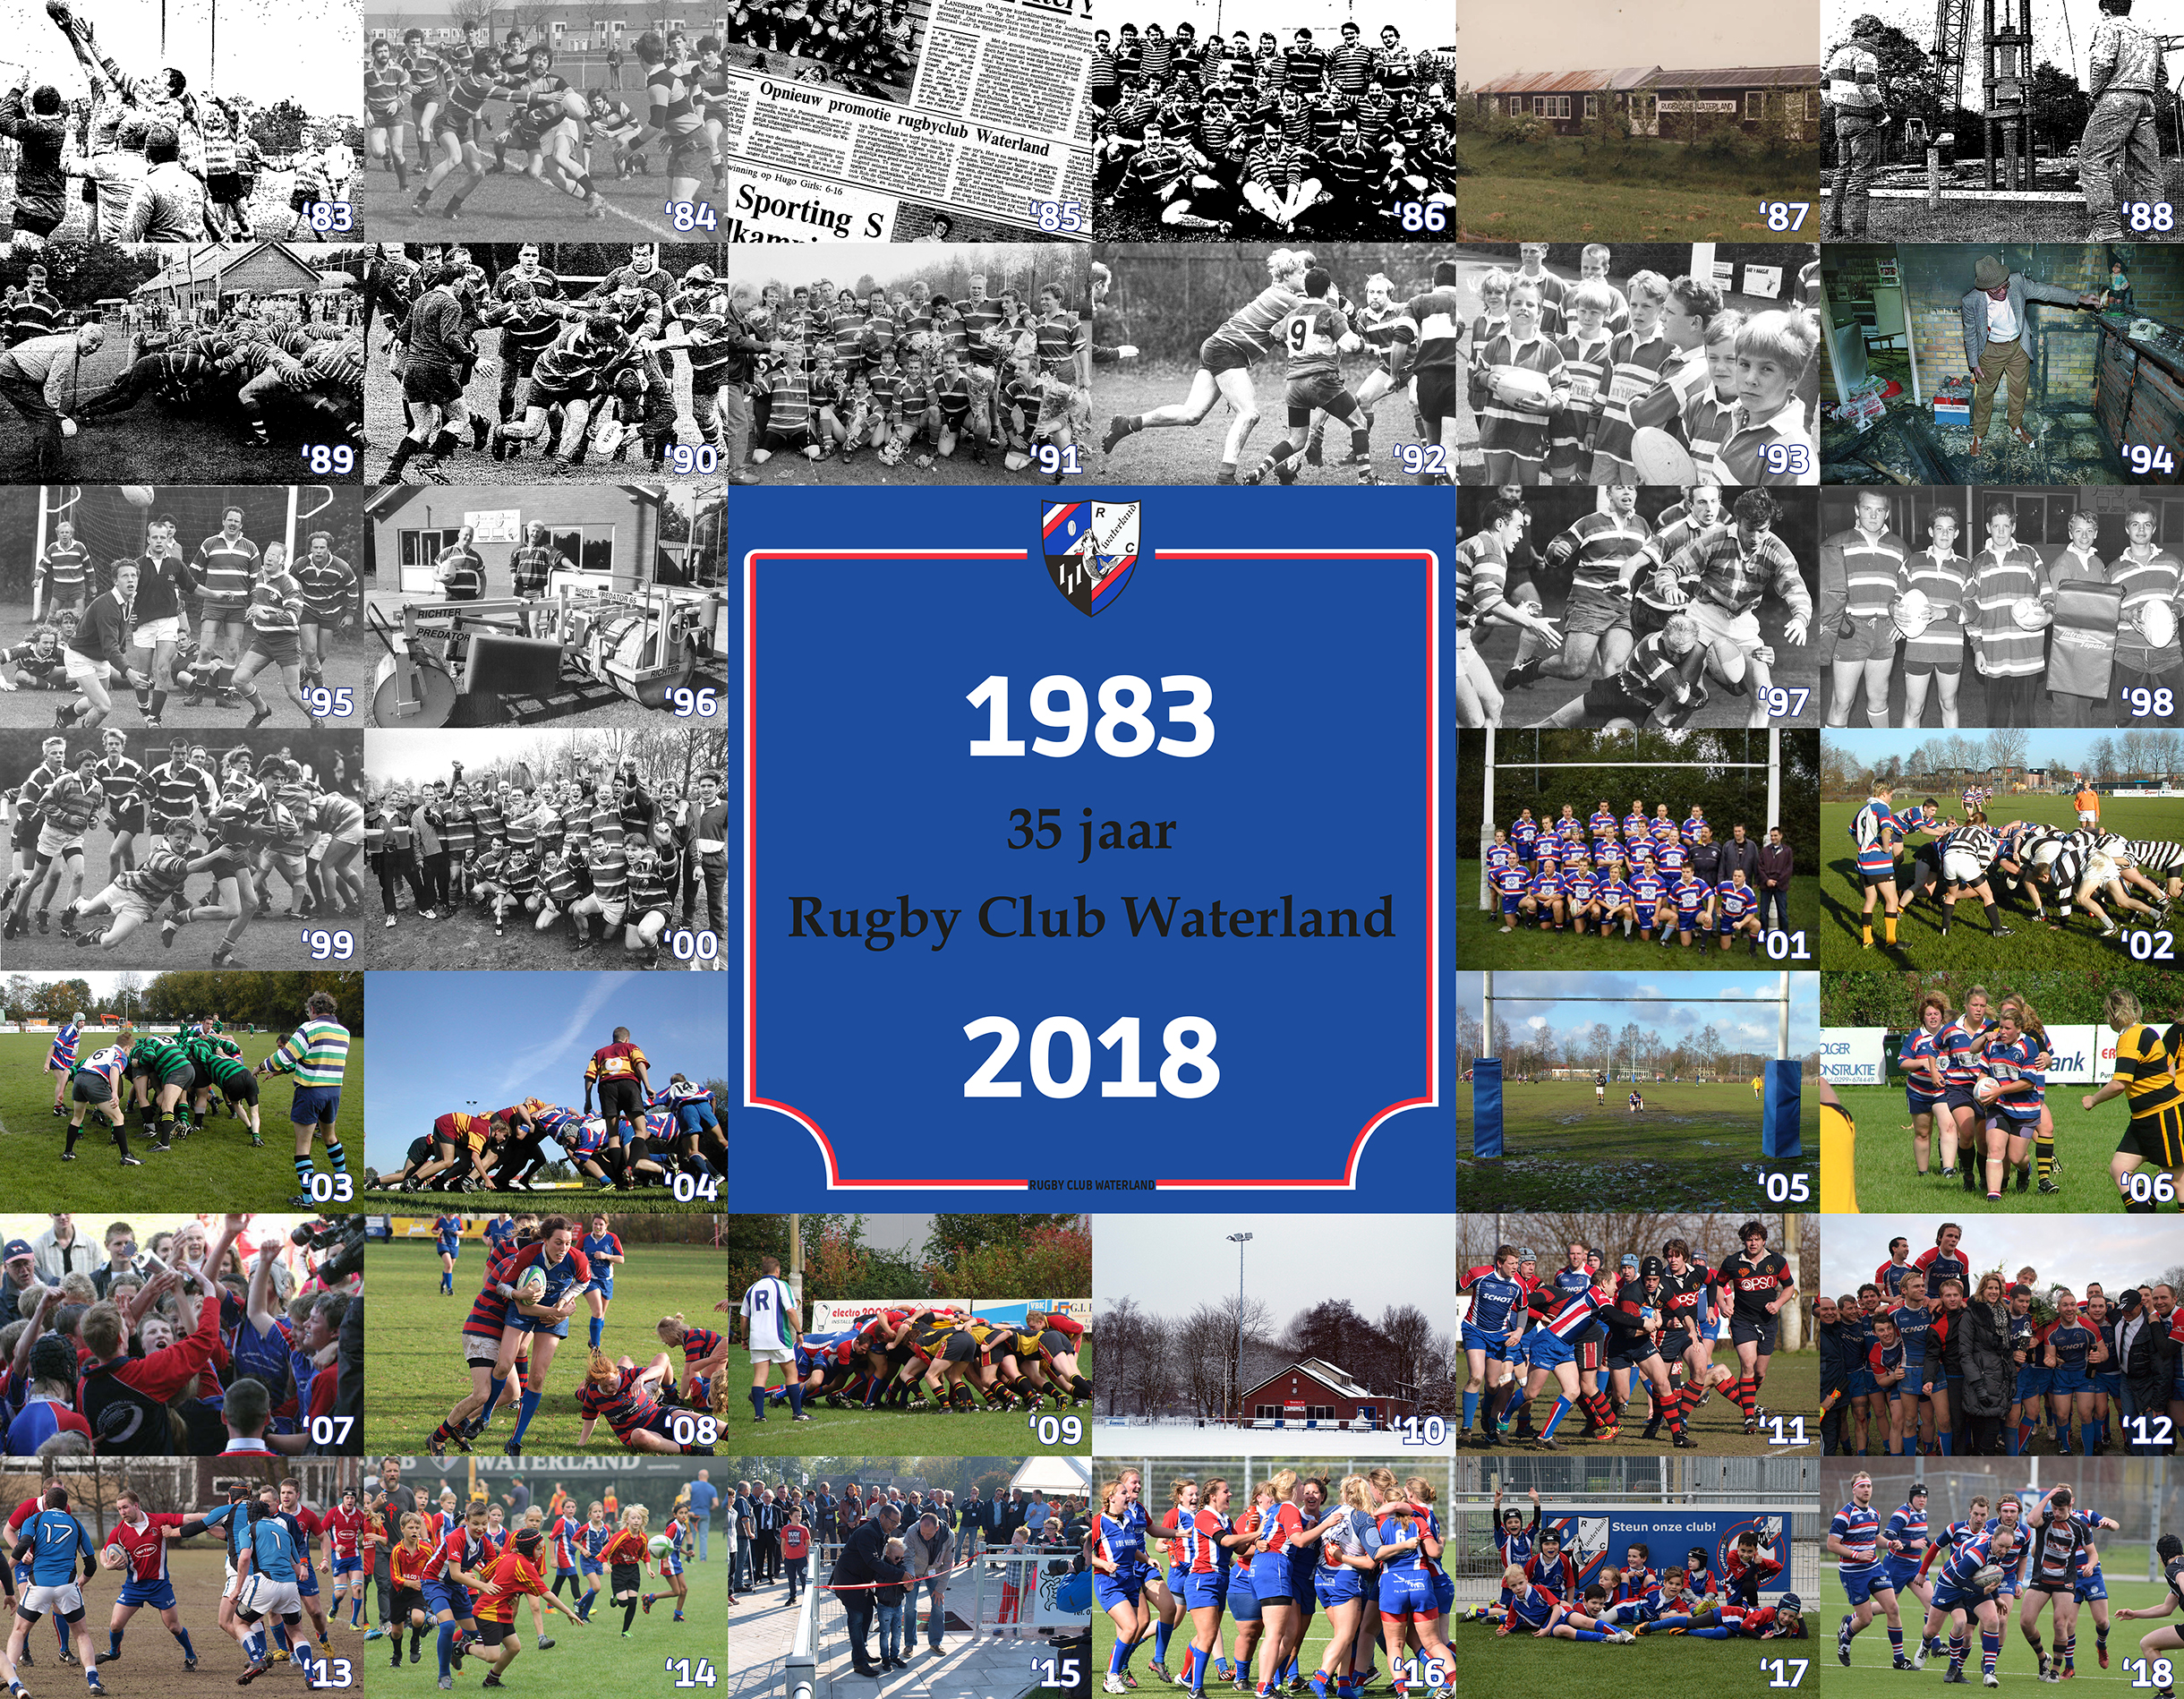 Rugby Club Waterland 35 jaar